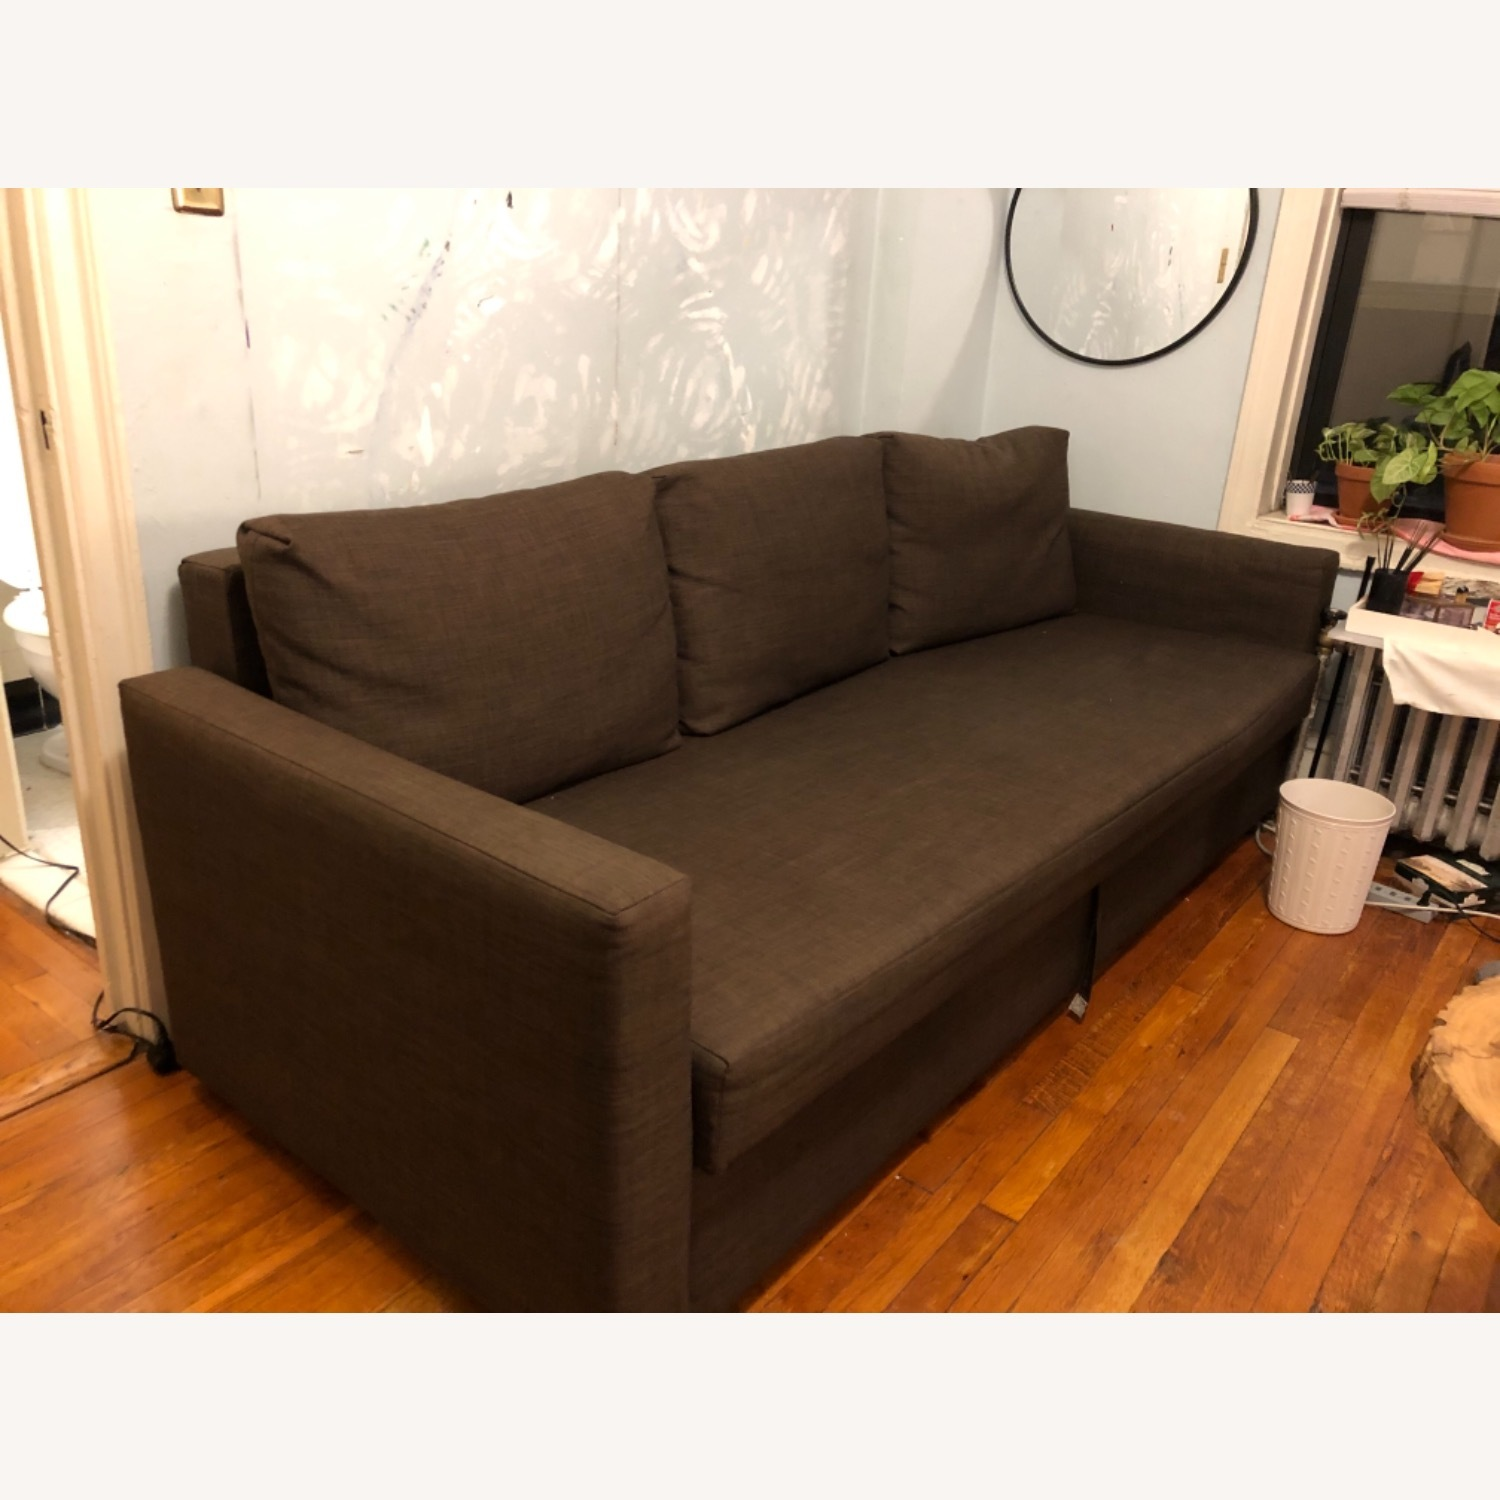 IKEA FRIHETEN Sleeper Sofa in brown - image-2